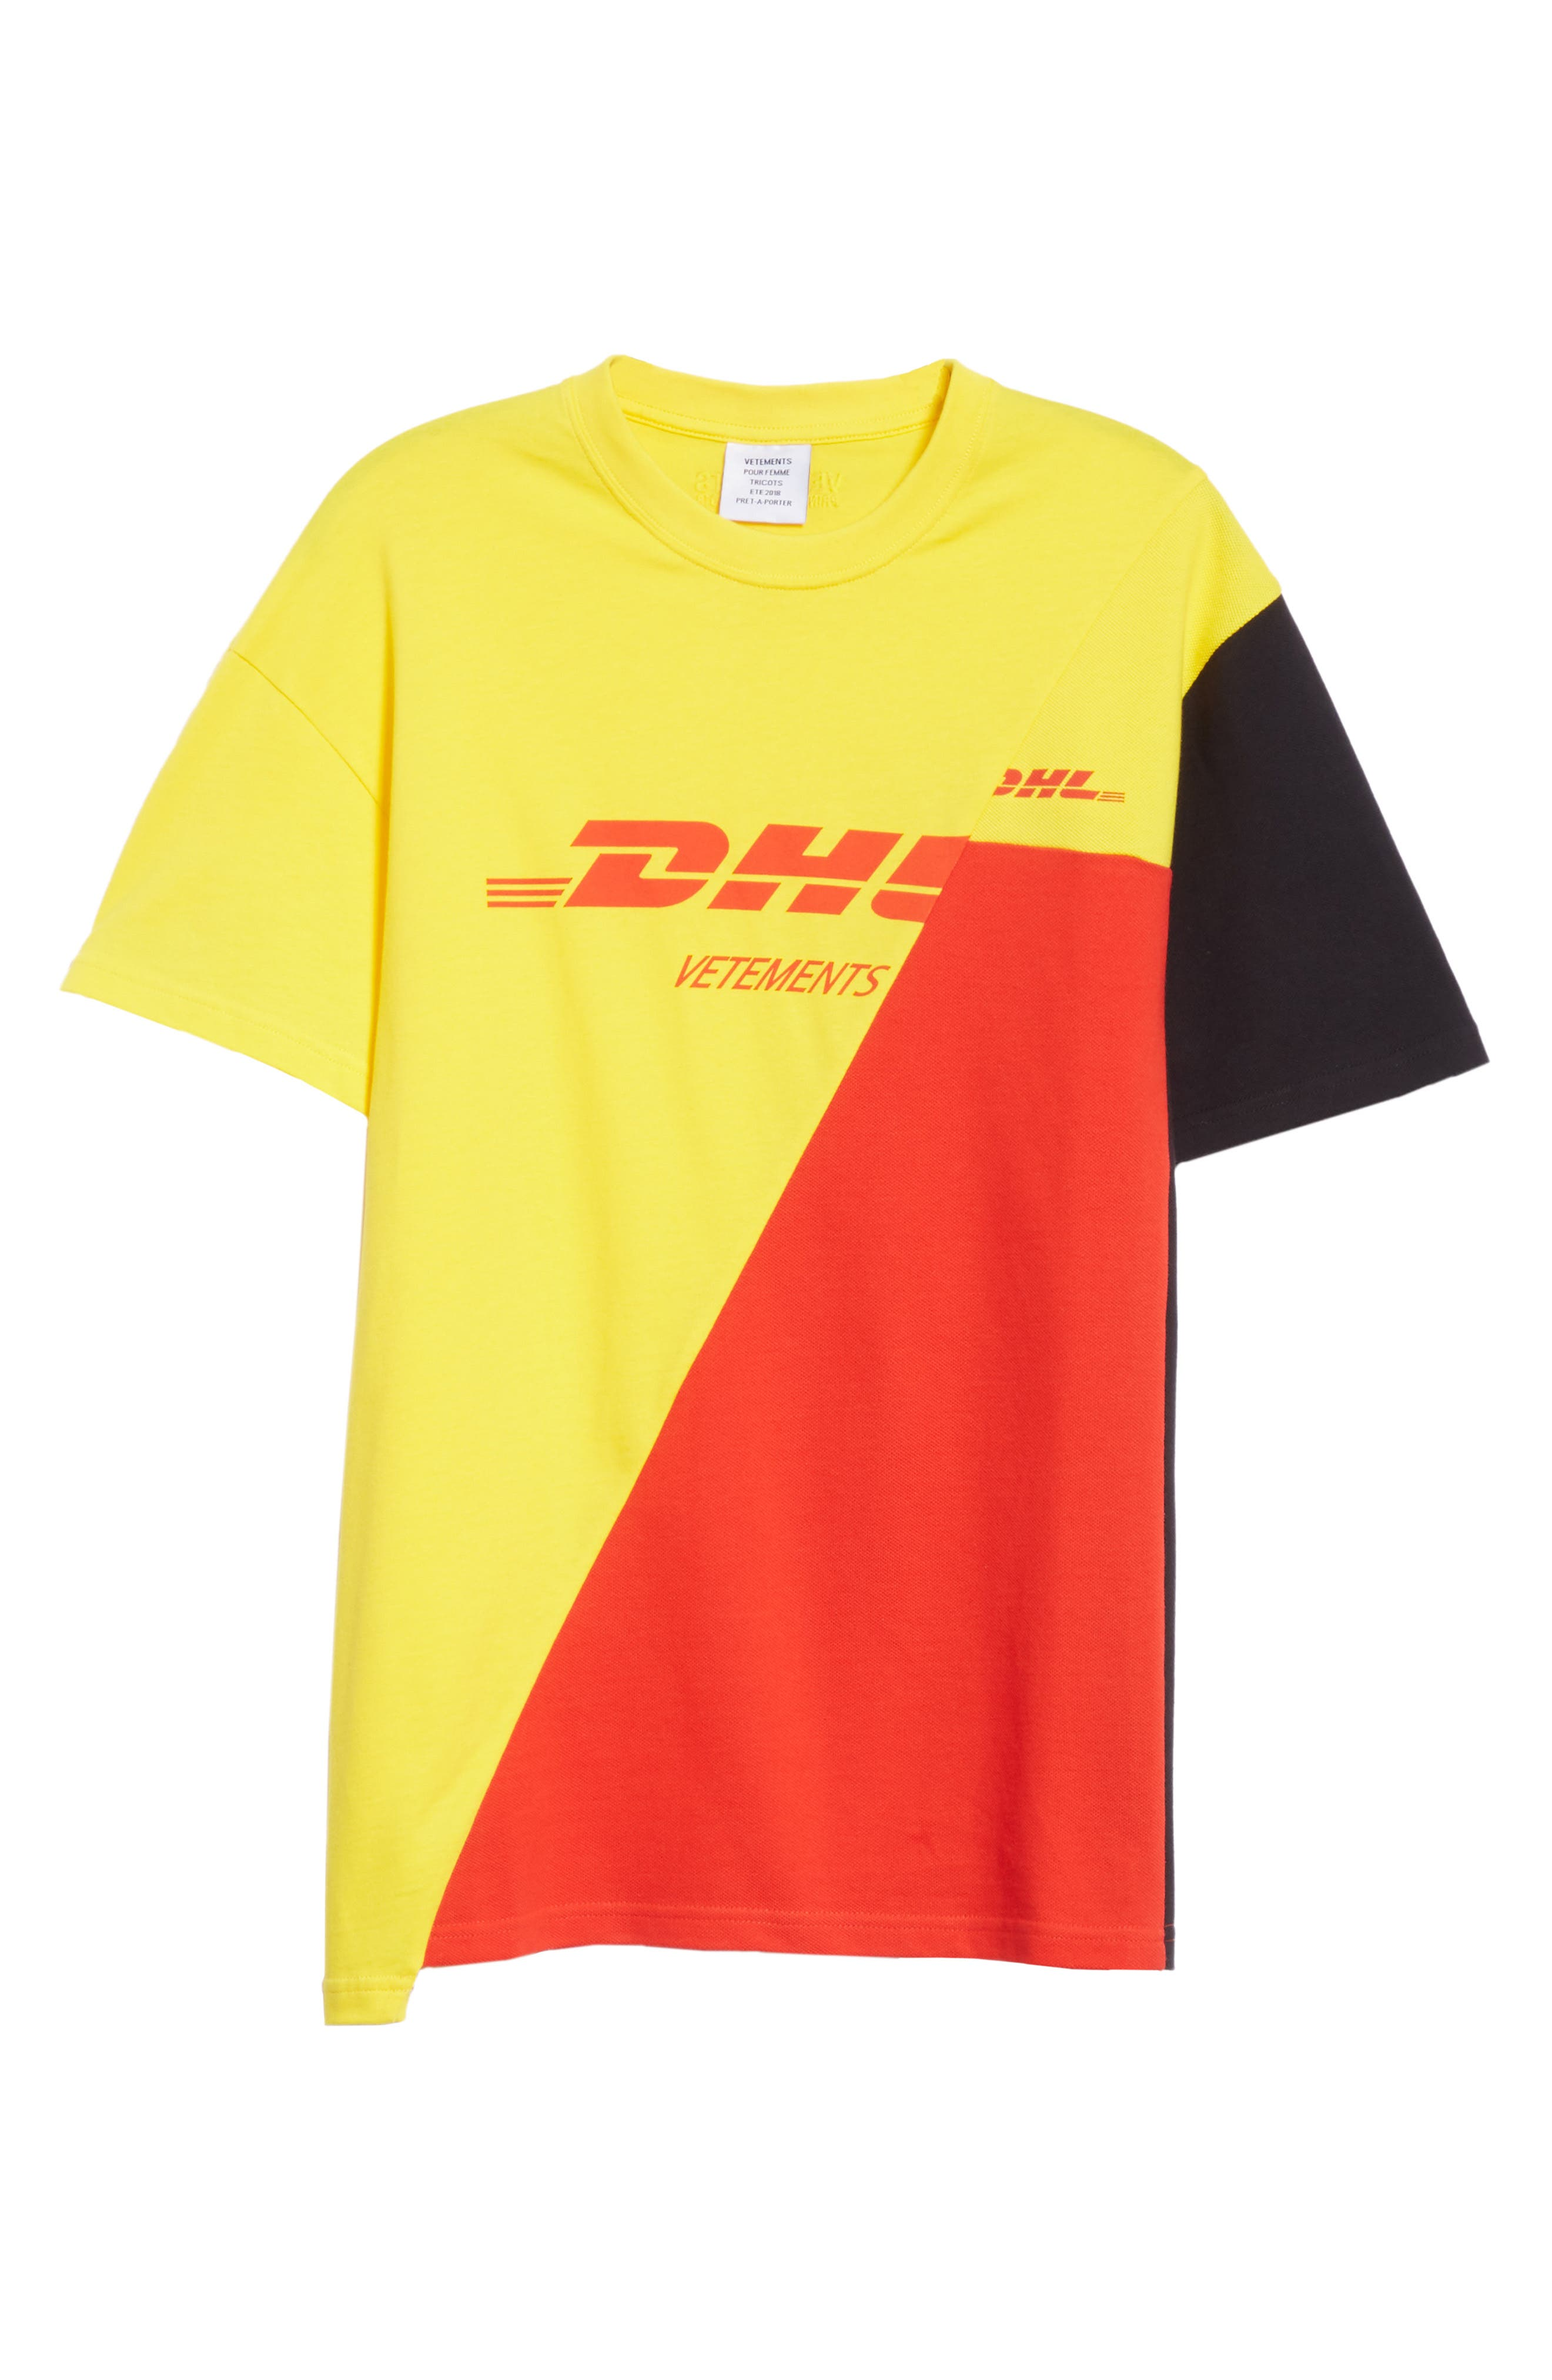 DHL Cut-Up Tee,                             Alternate thumbnail 6, color,                             700